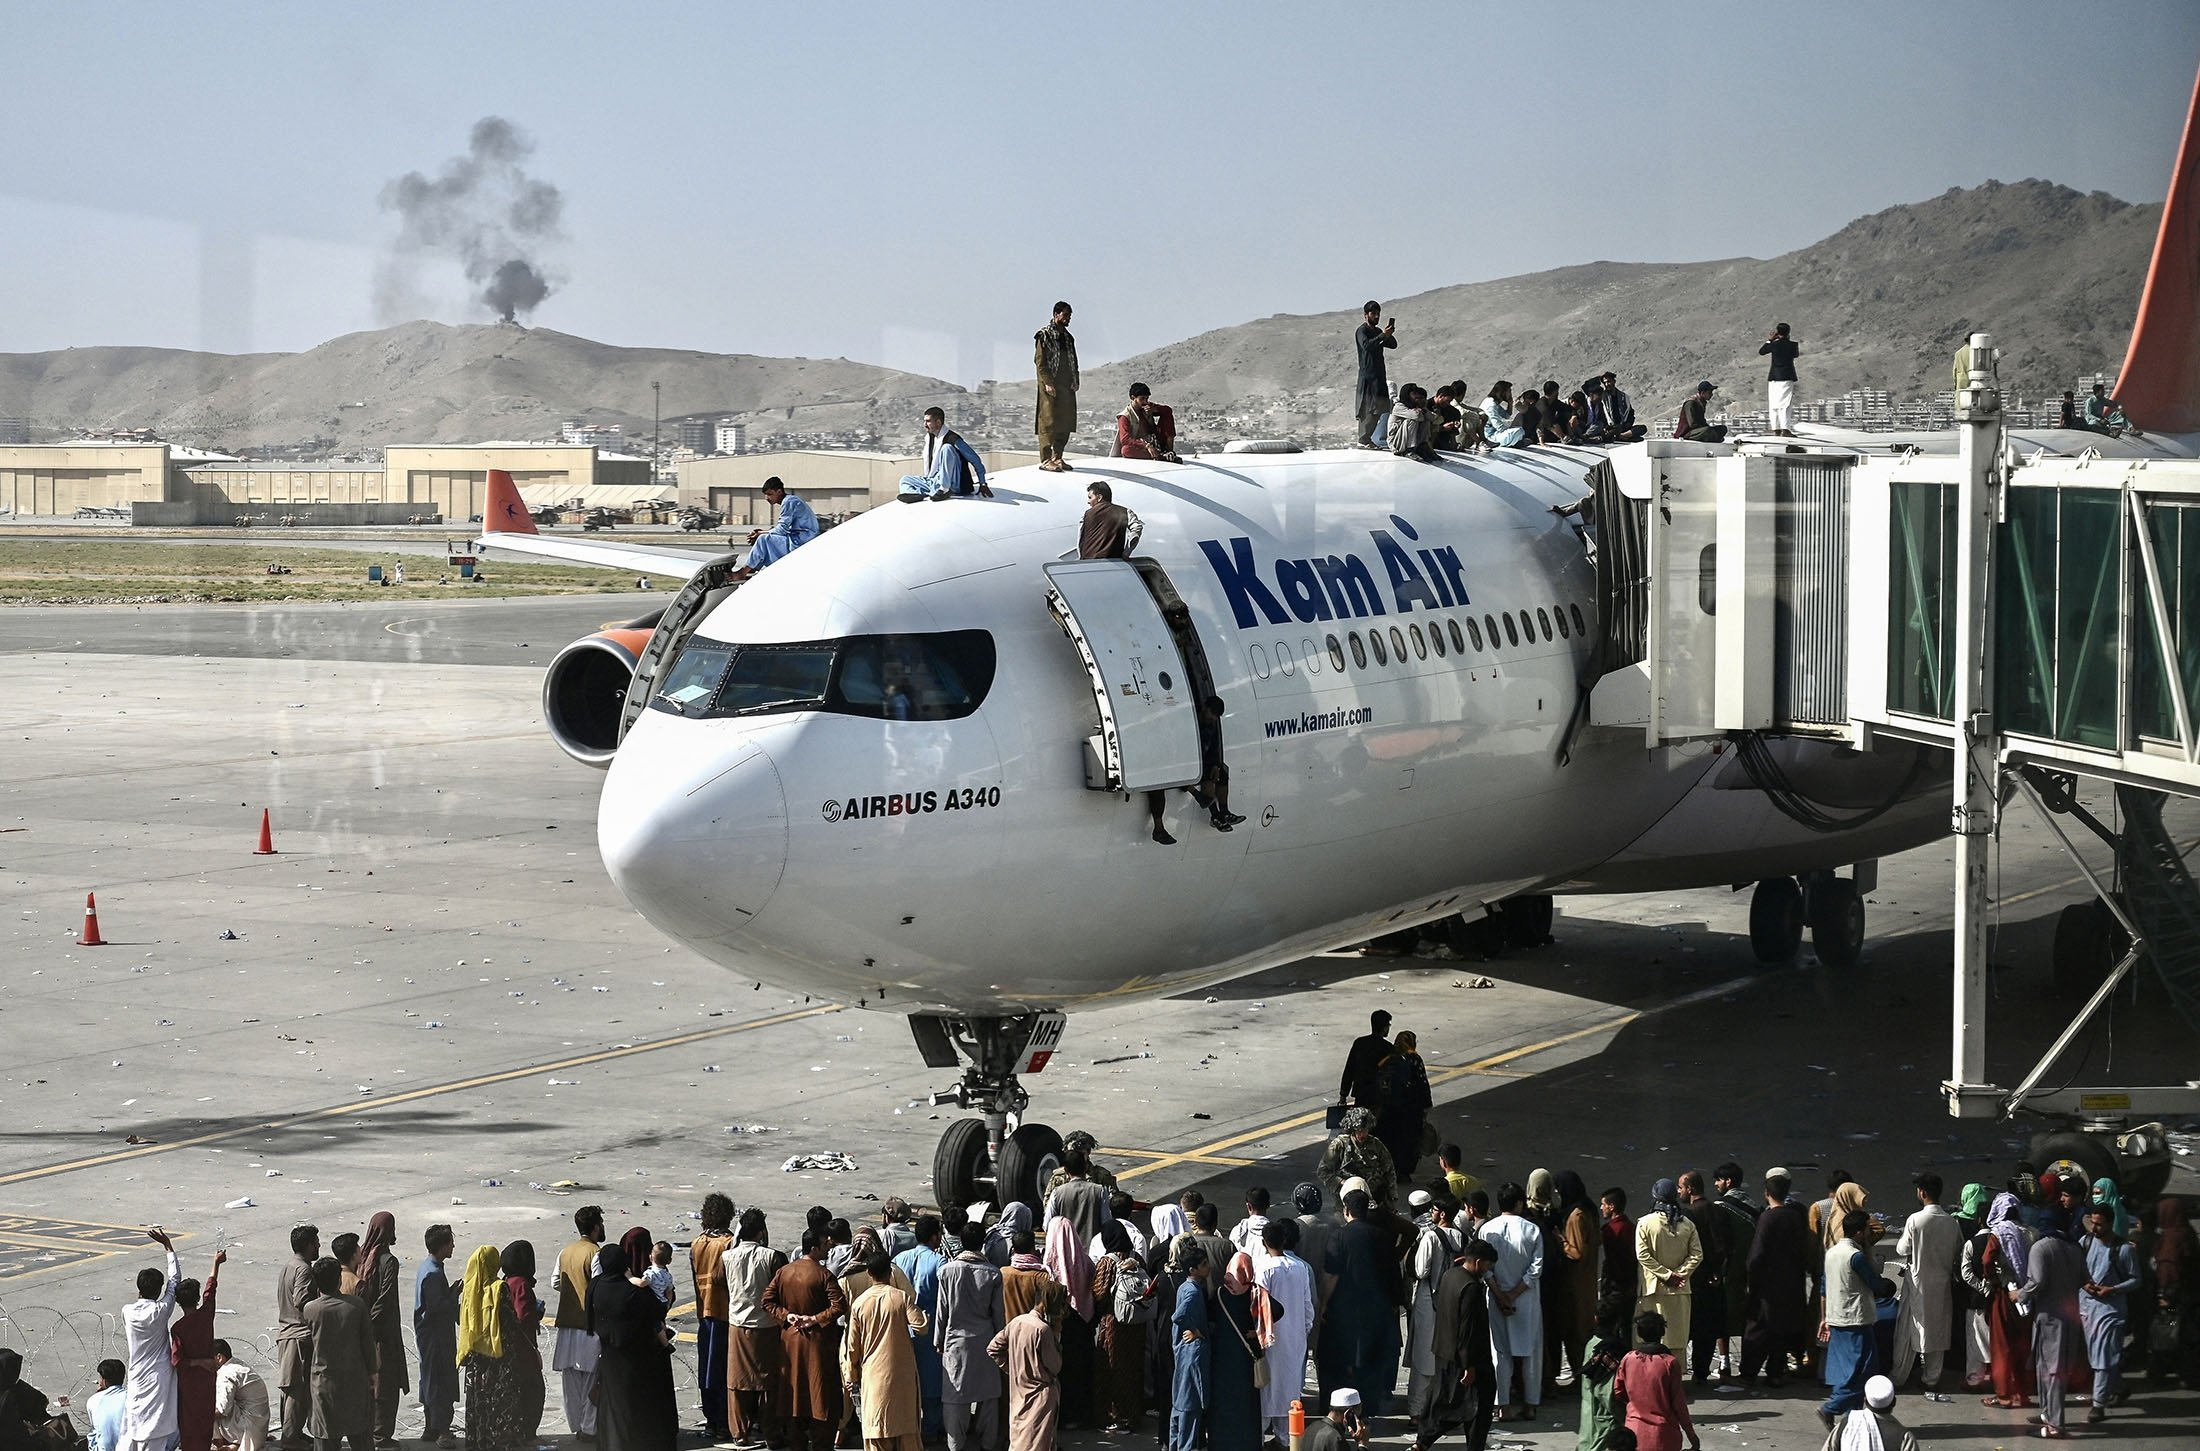 Afghan people climb atop a plane as they wait at the Kabul airport, Aug. 16, 2021. (AFP Photo)